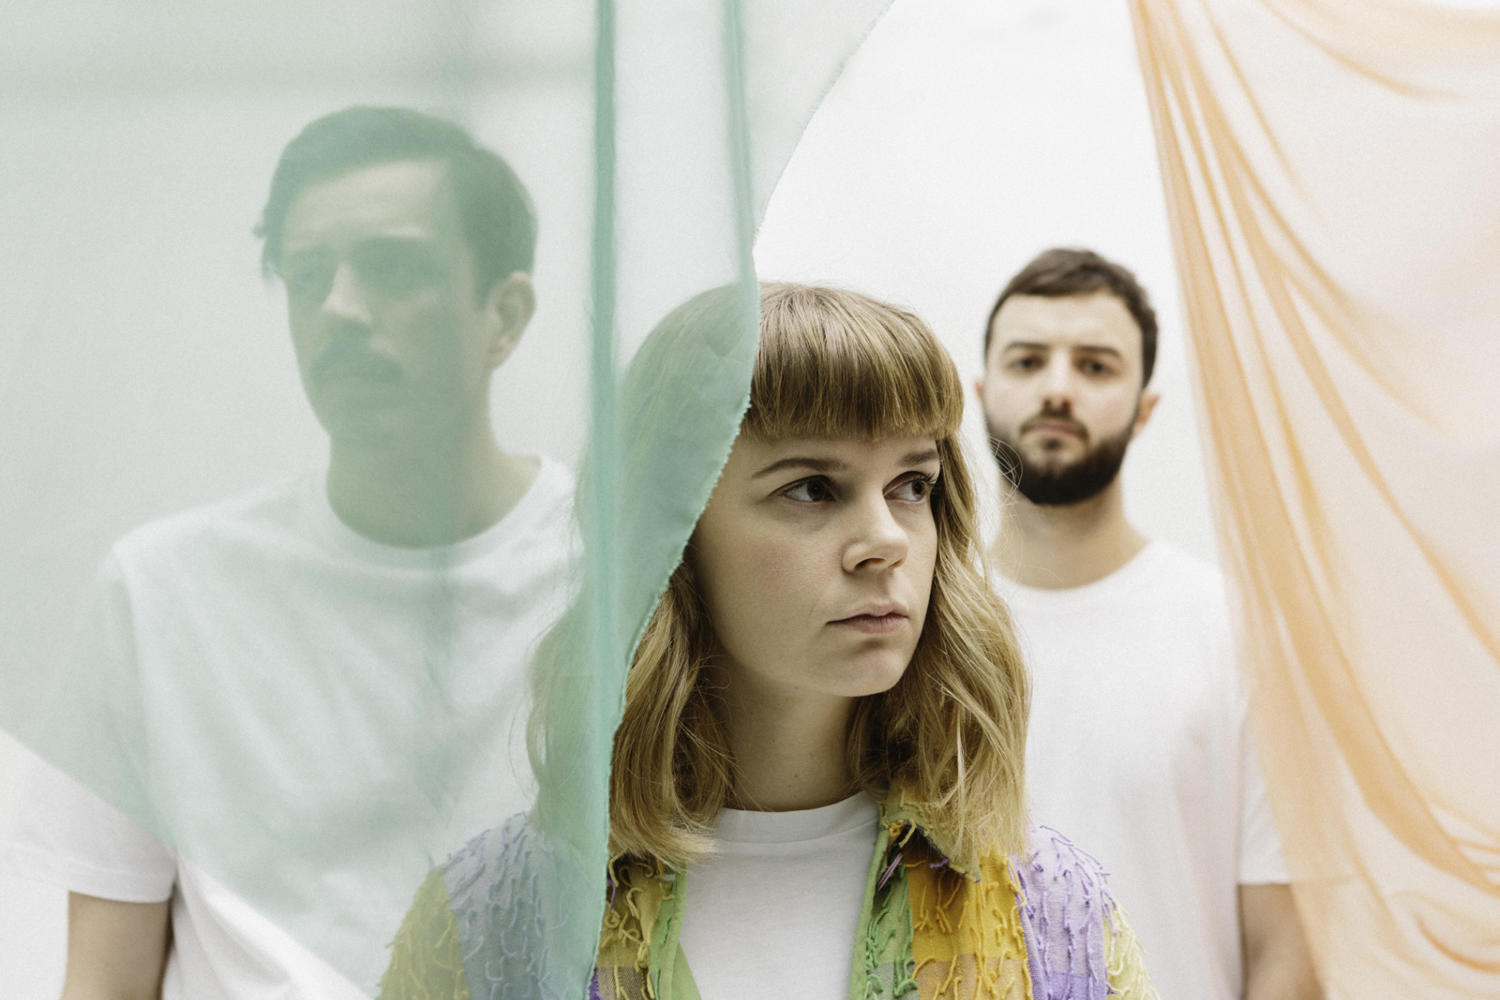 Leeds trio Peakes share the nighttime pop of 'Hole In The Floor'